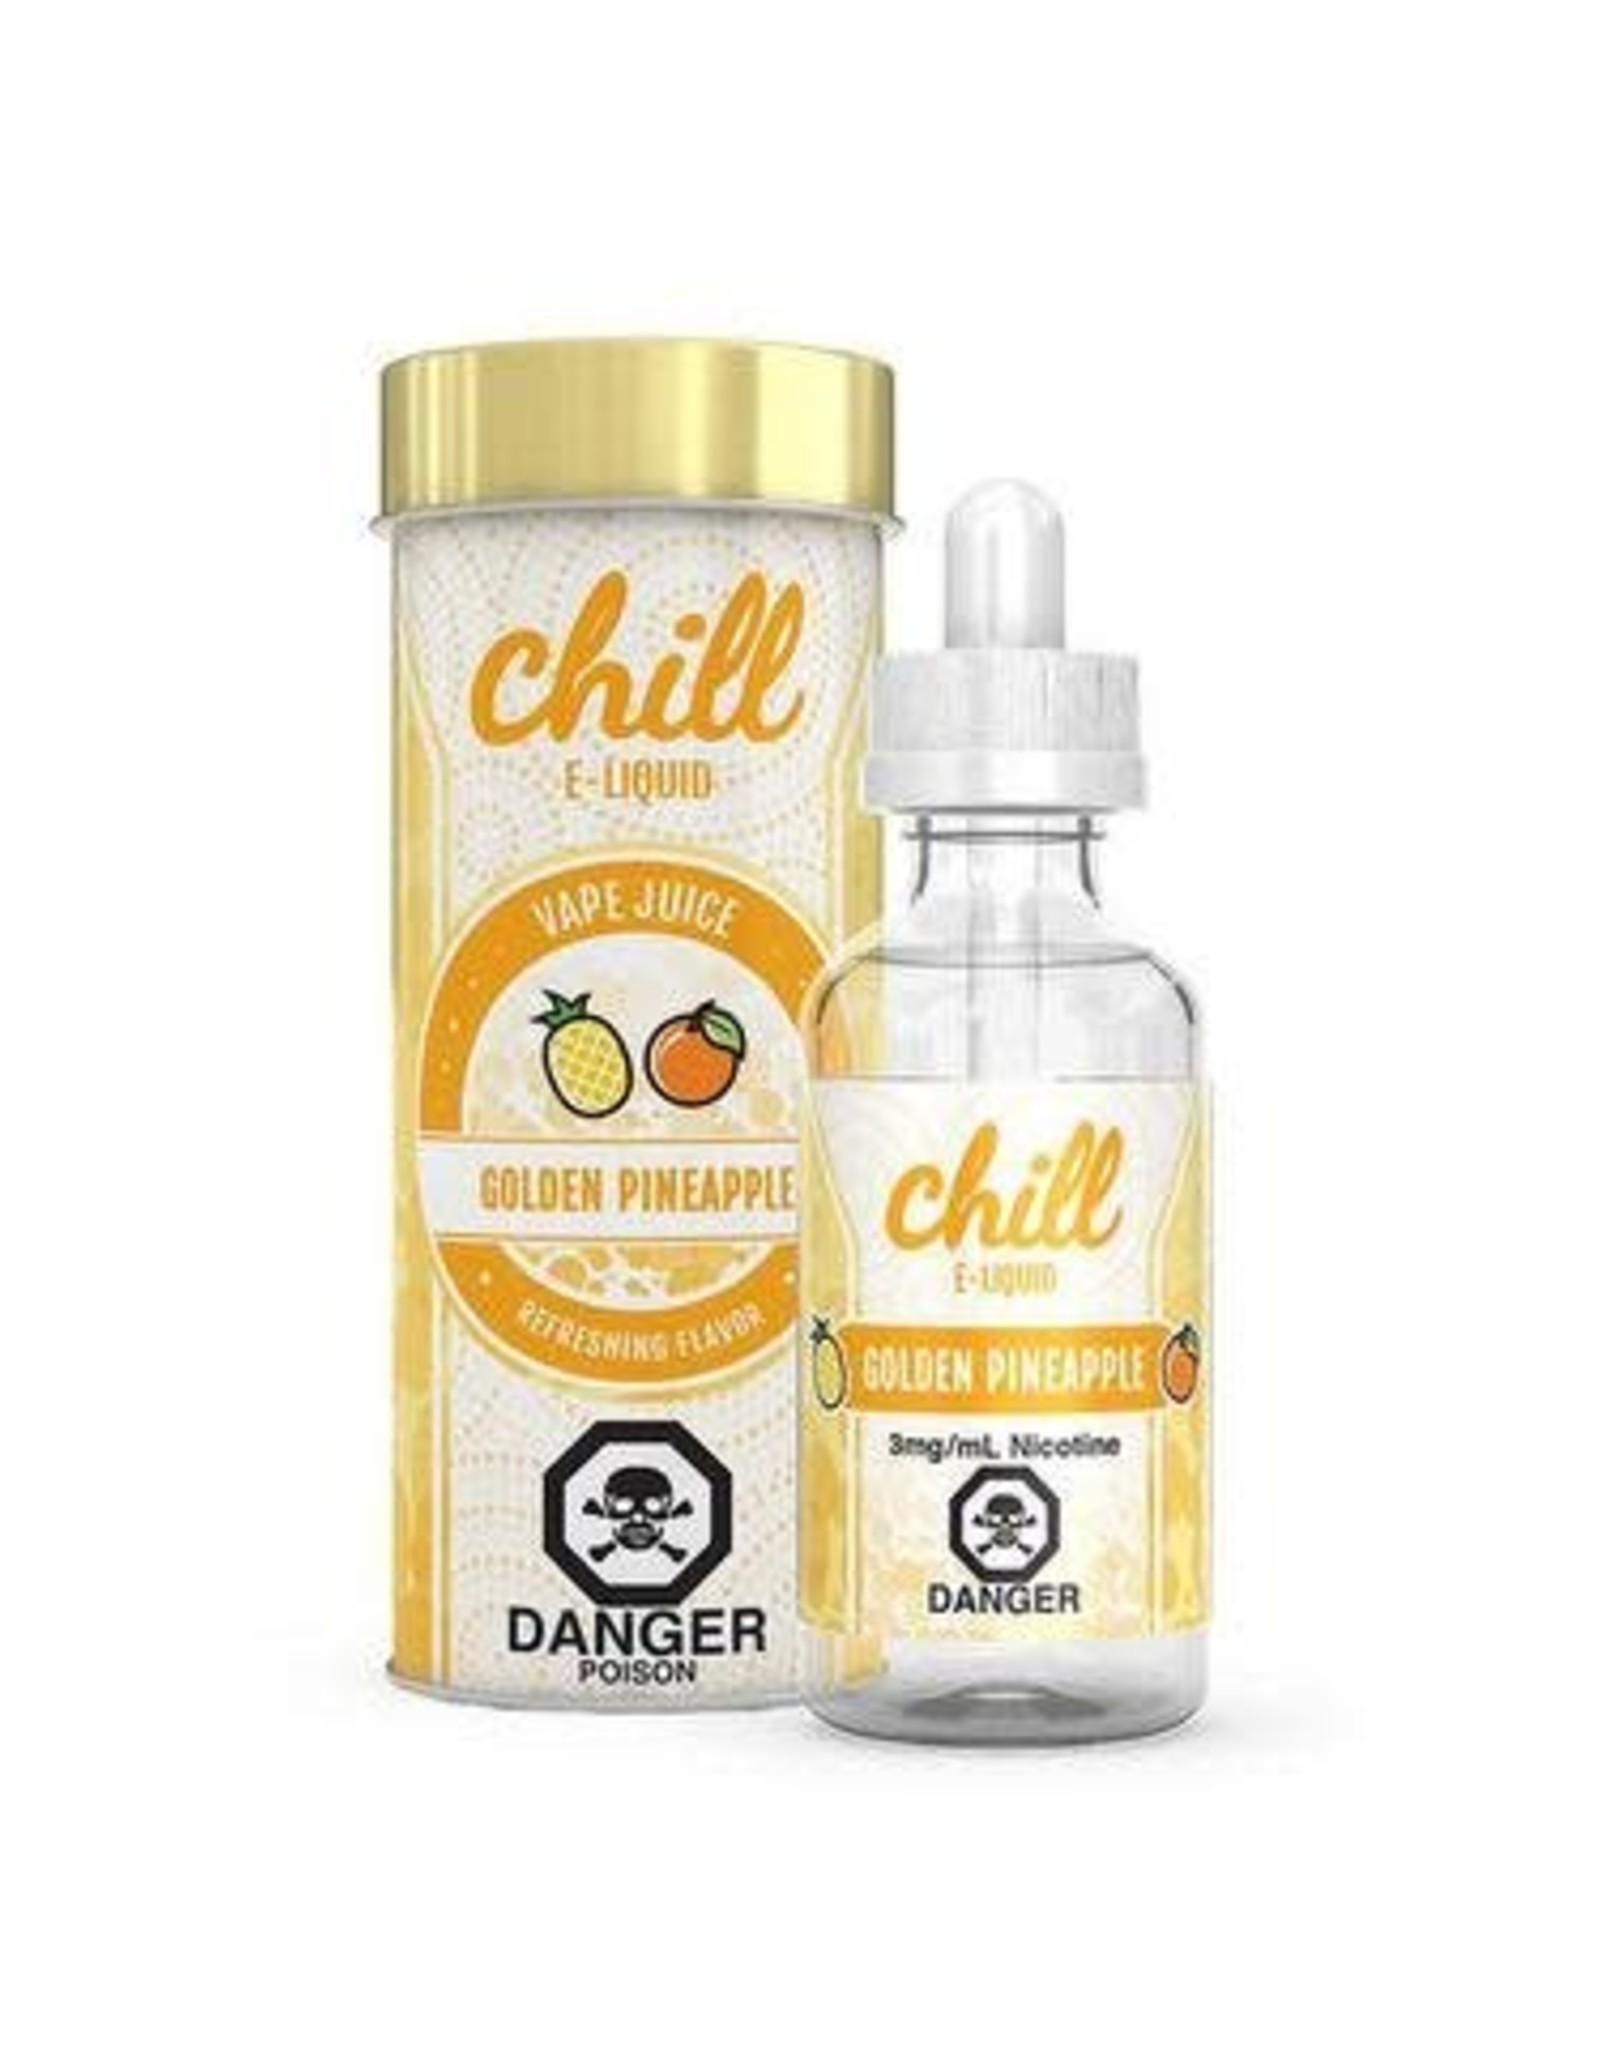 CHILL GOLDEN PINEAPPLE BY CHILL E-LIQUIDS(60ml)